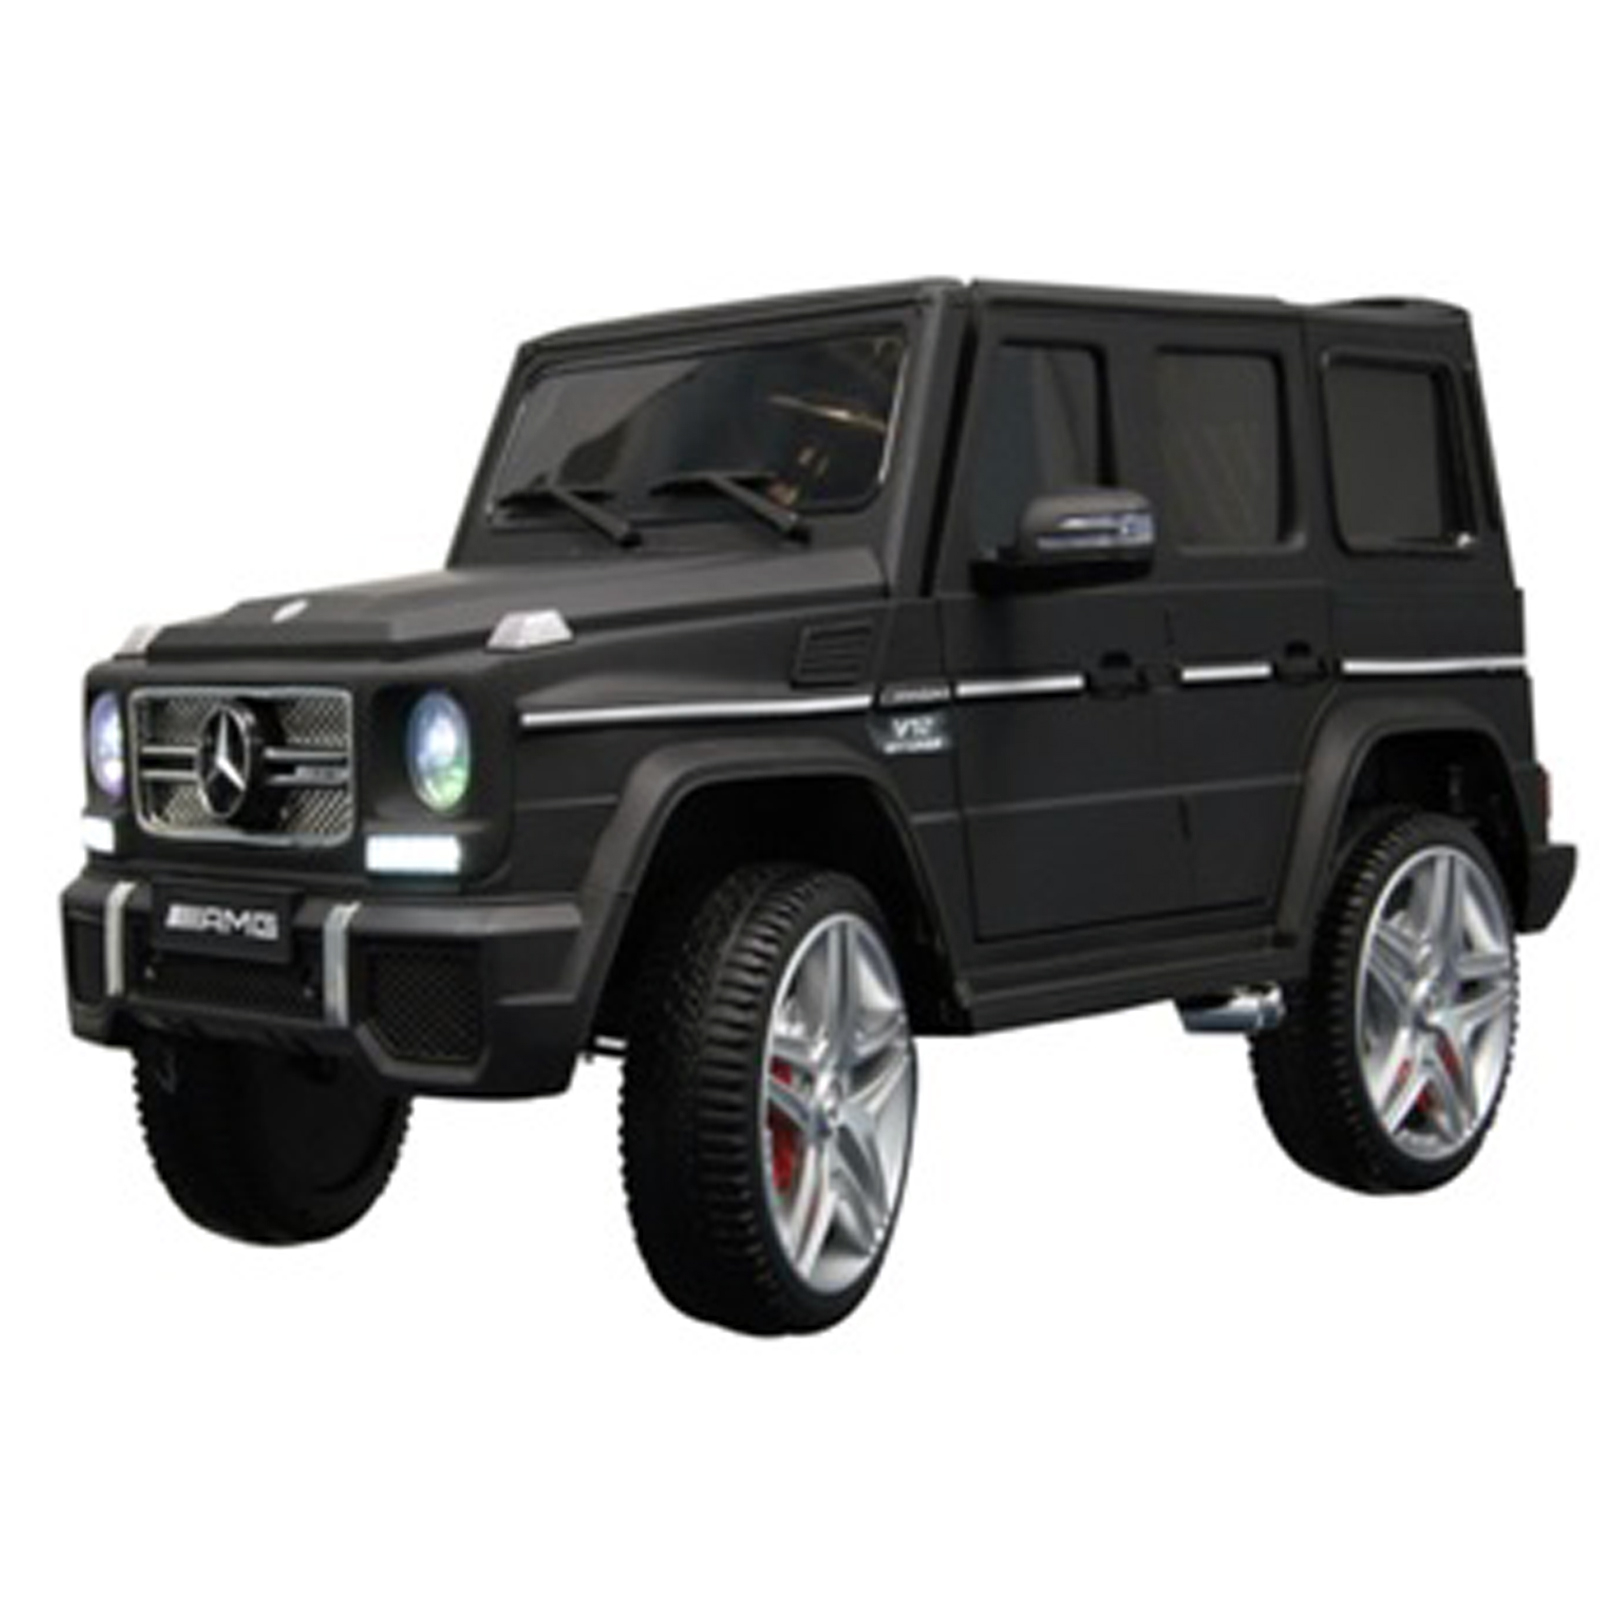 KidPlay Licensed Kids Ride On Car Mercedes G65 12V Battery Powered Vehicle Black